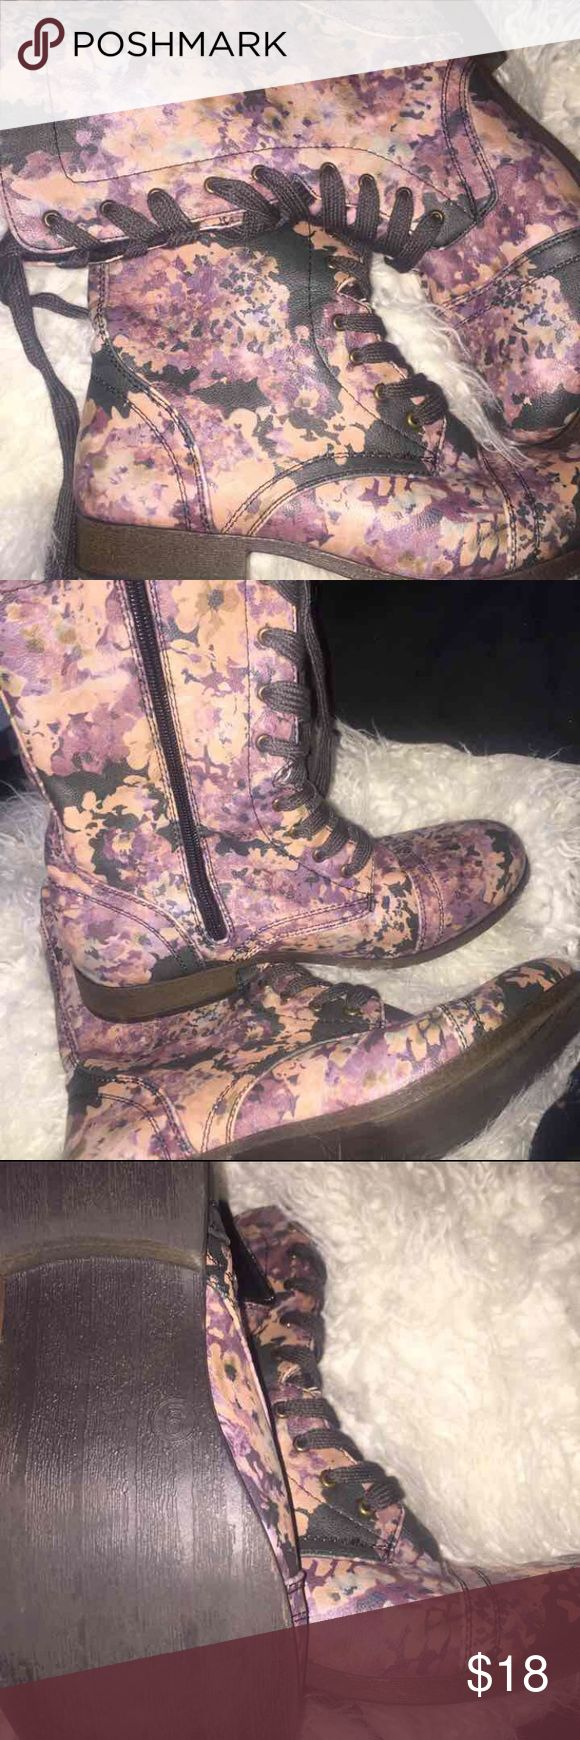 Floral combat boots Pink purple and blue gray pastel floral pattern. Purchased from target. Worn once great condition Xhilaration Shoes Ankle Boots & Booties